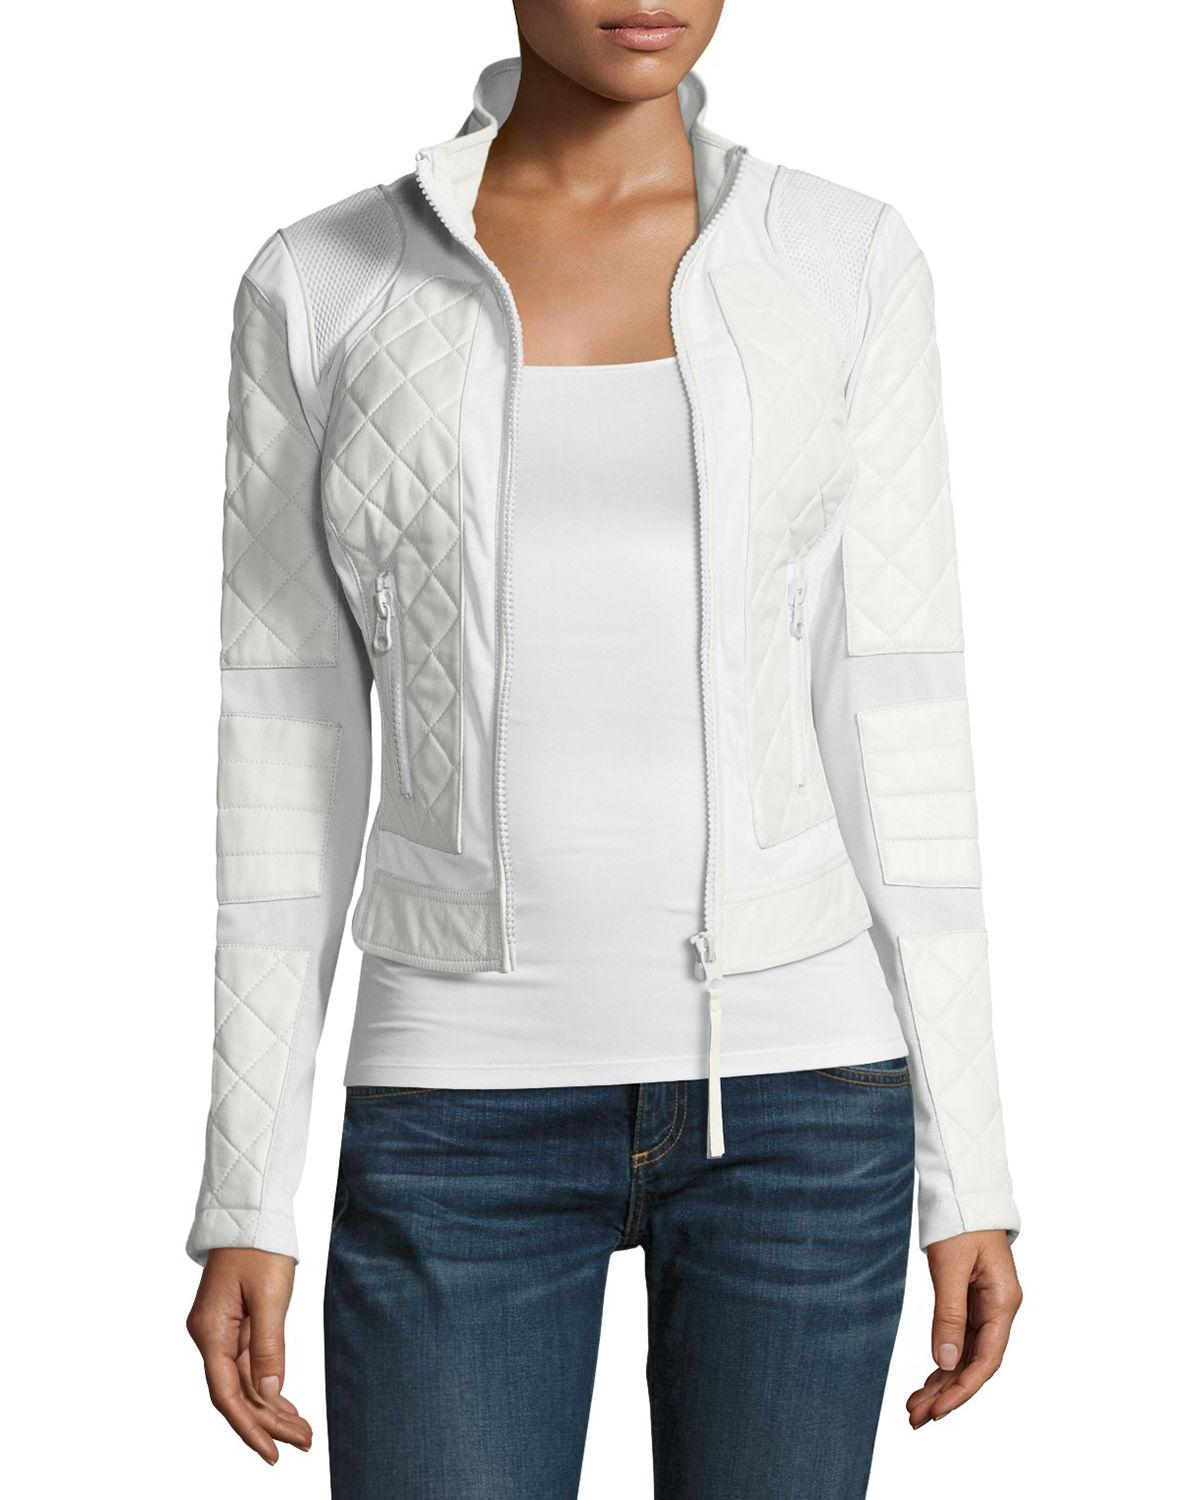 5ce06c84d5ab Lyst - BLANC NOIR Quilted Leather   Mesh Moto Jacket in White - Save 50%